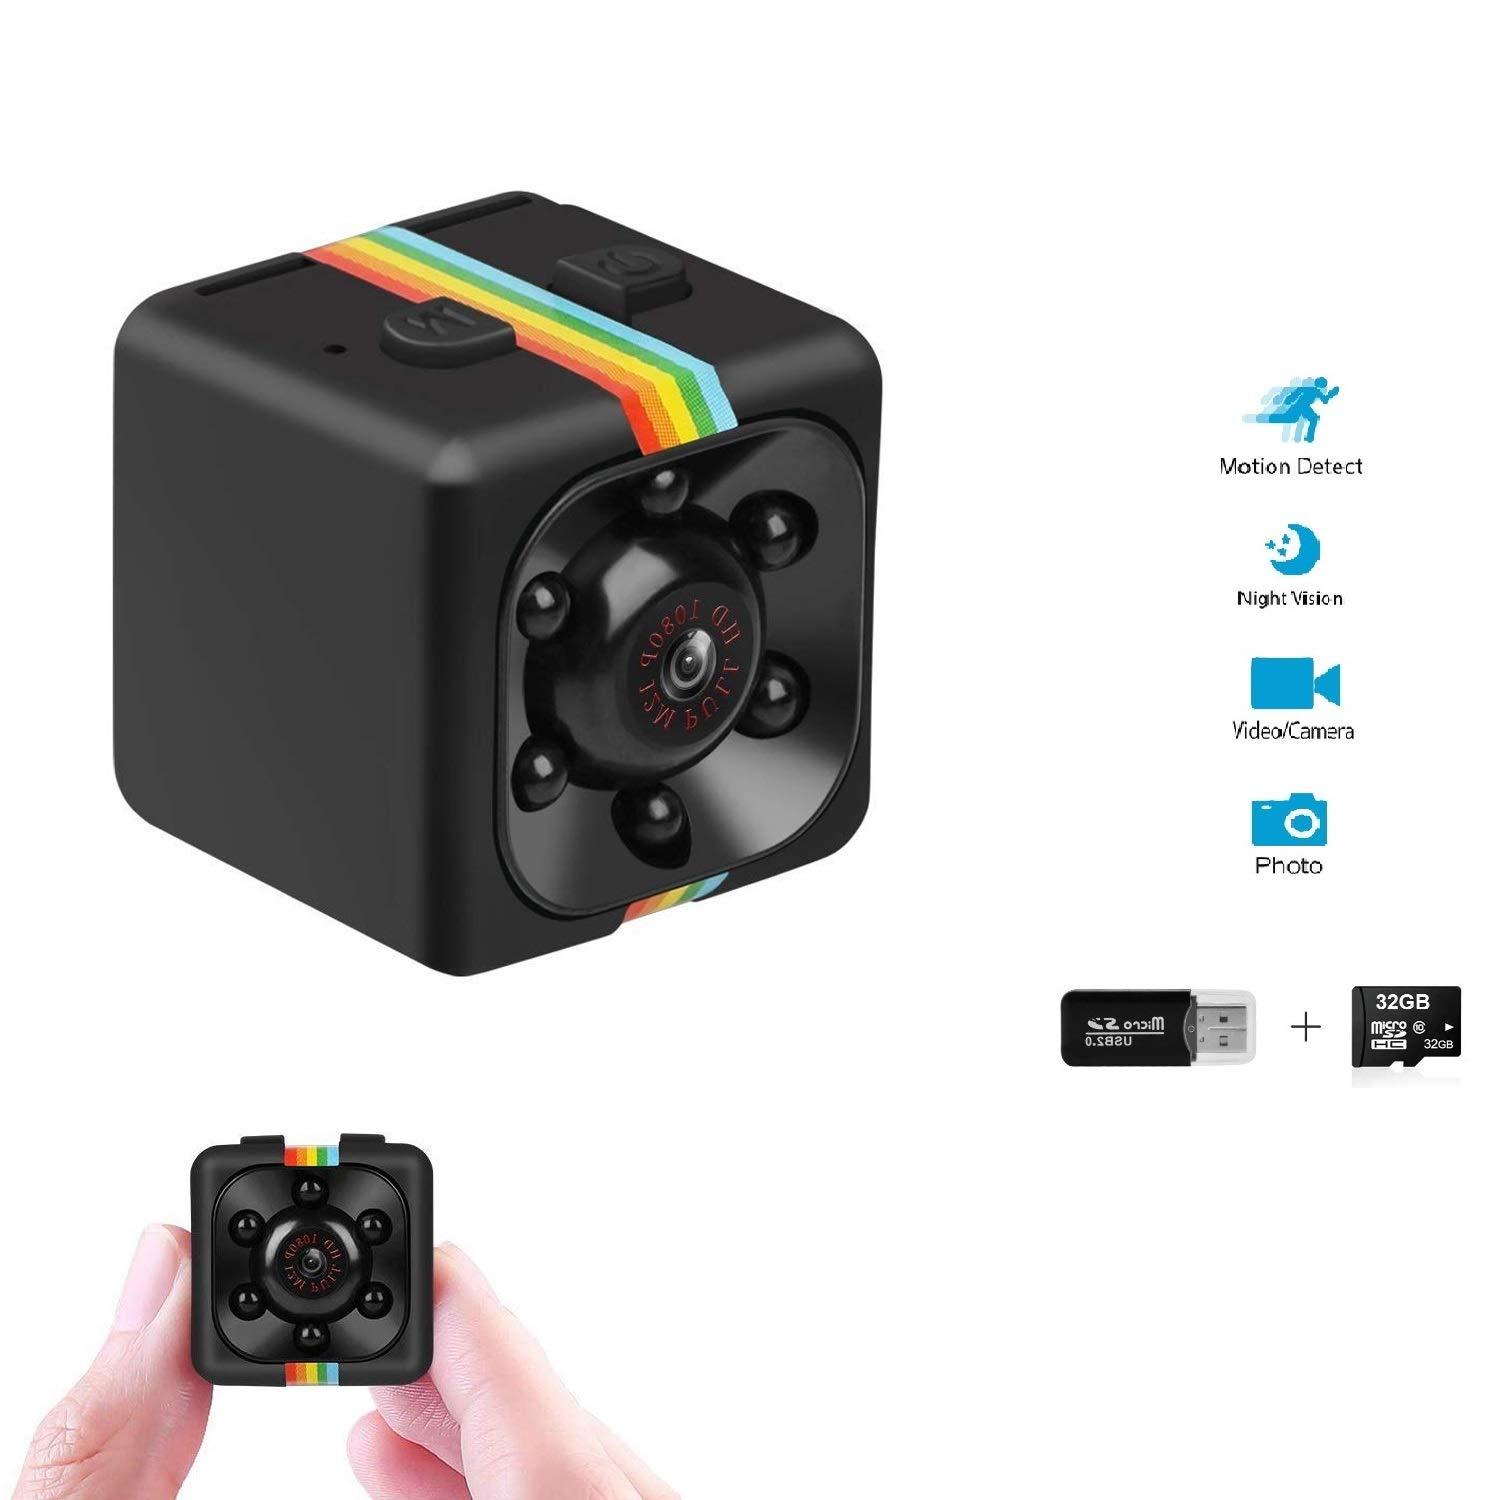 Mini Spy Camera Portable Small Surveillance Hidden Camera FHD 1080P Nanny cam with 32GB SD Card Motion Detection and Infrared Night Vision, Home Security Camera Wireless for Indoor and Outdoor